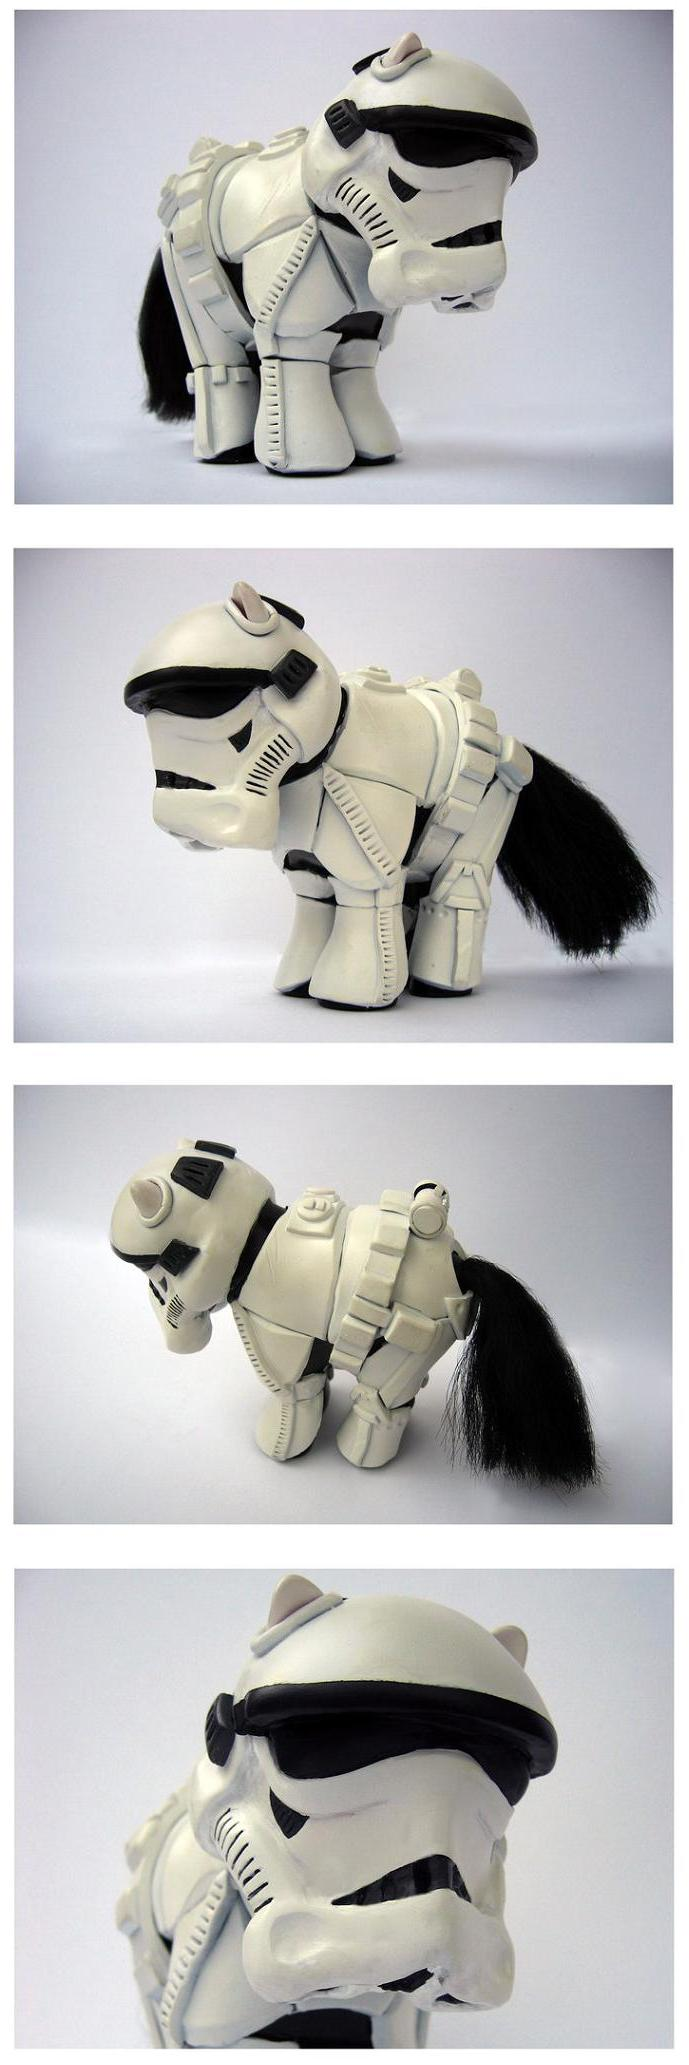 my little pony stormtrooper by spippo Stormtrooper Inspired Art and Design